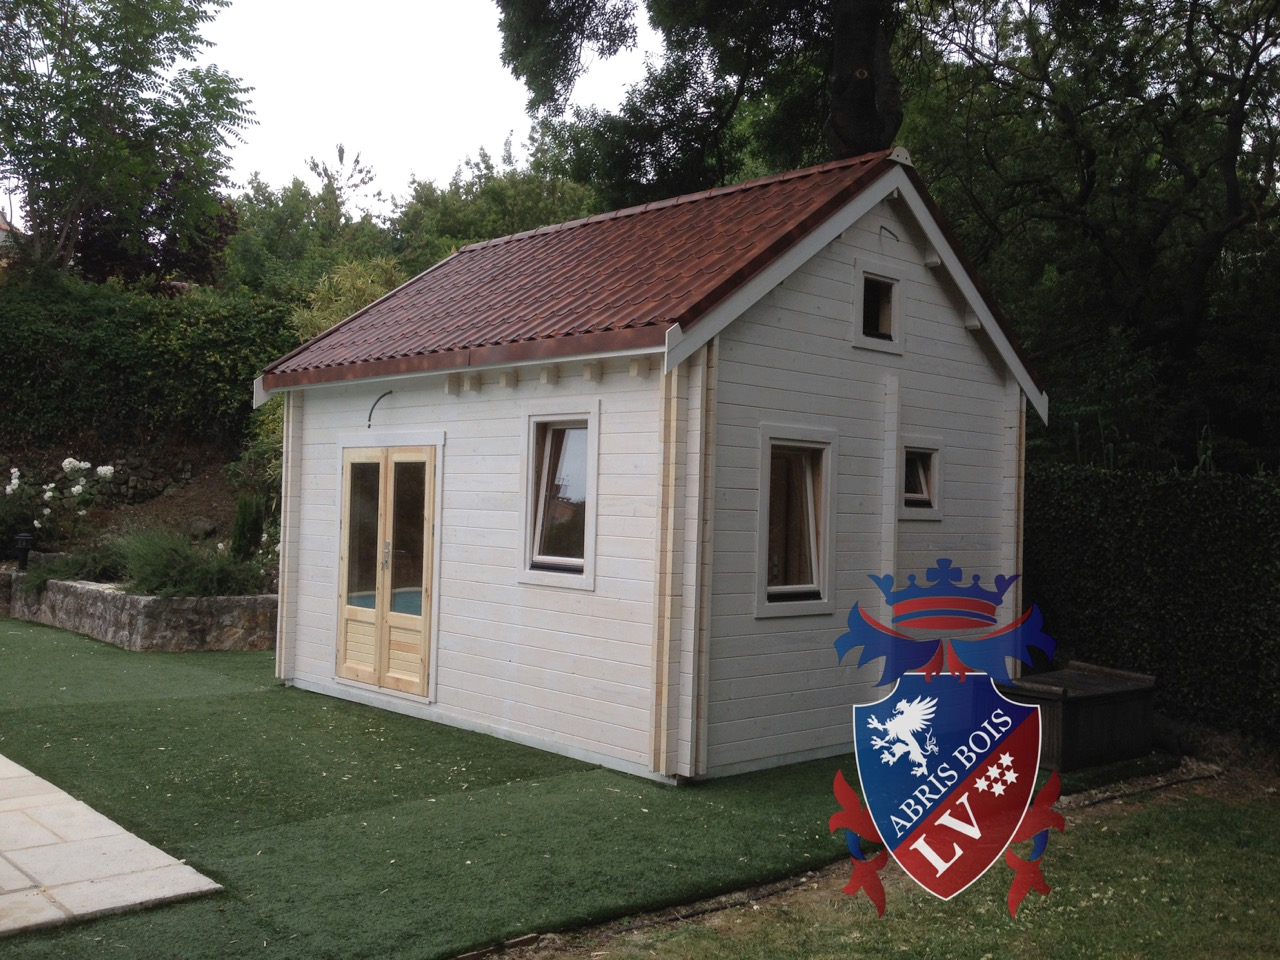 Bespoke Log cabins, tiny houses, micro homes  2